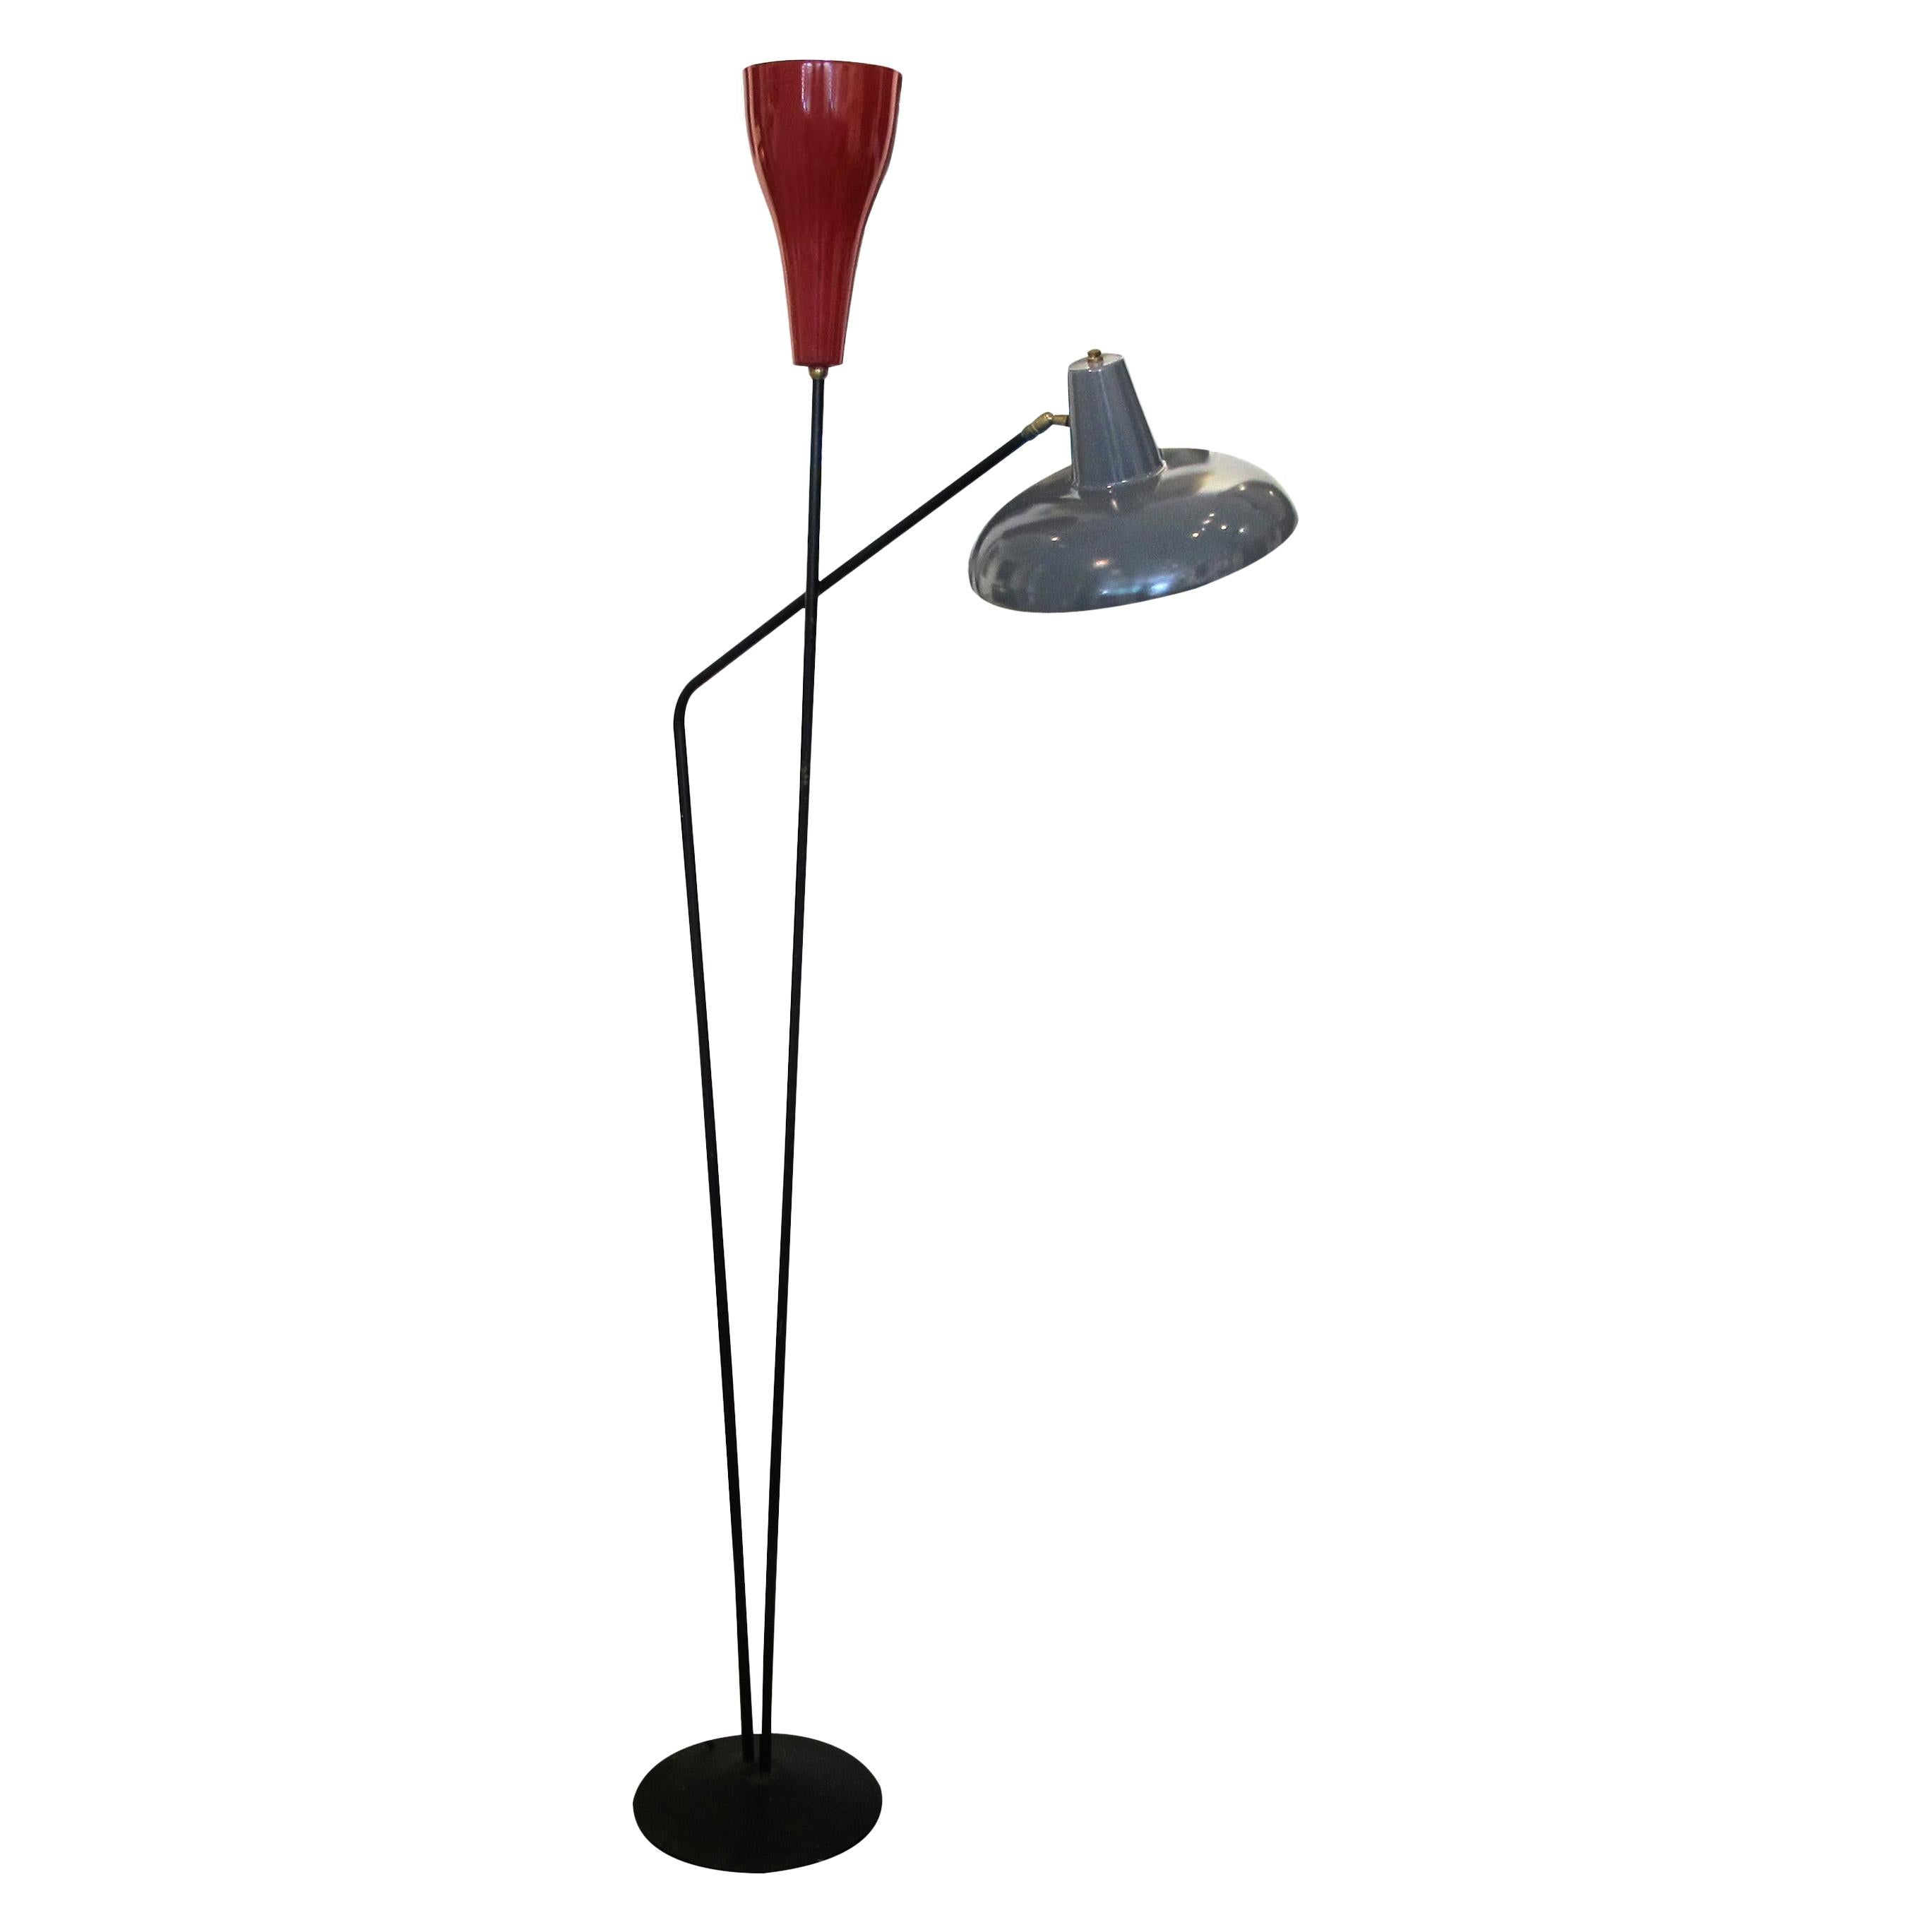 1950s Mid Century Italian Floor Lamp Two Painted Blue & Red Reflector Shades